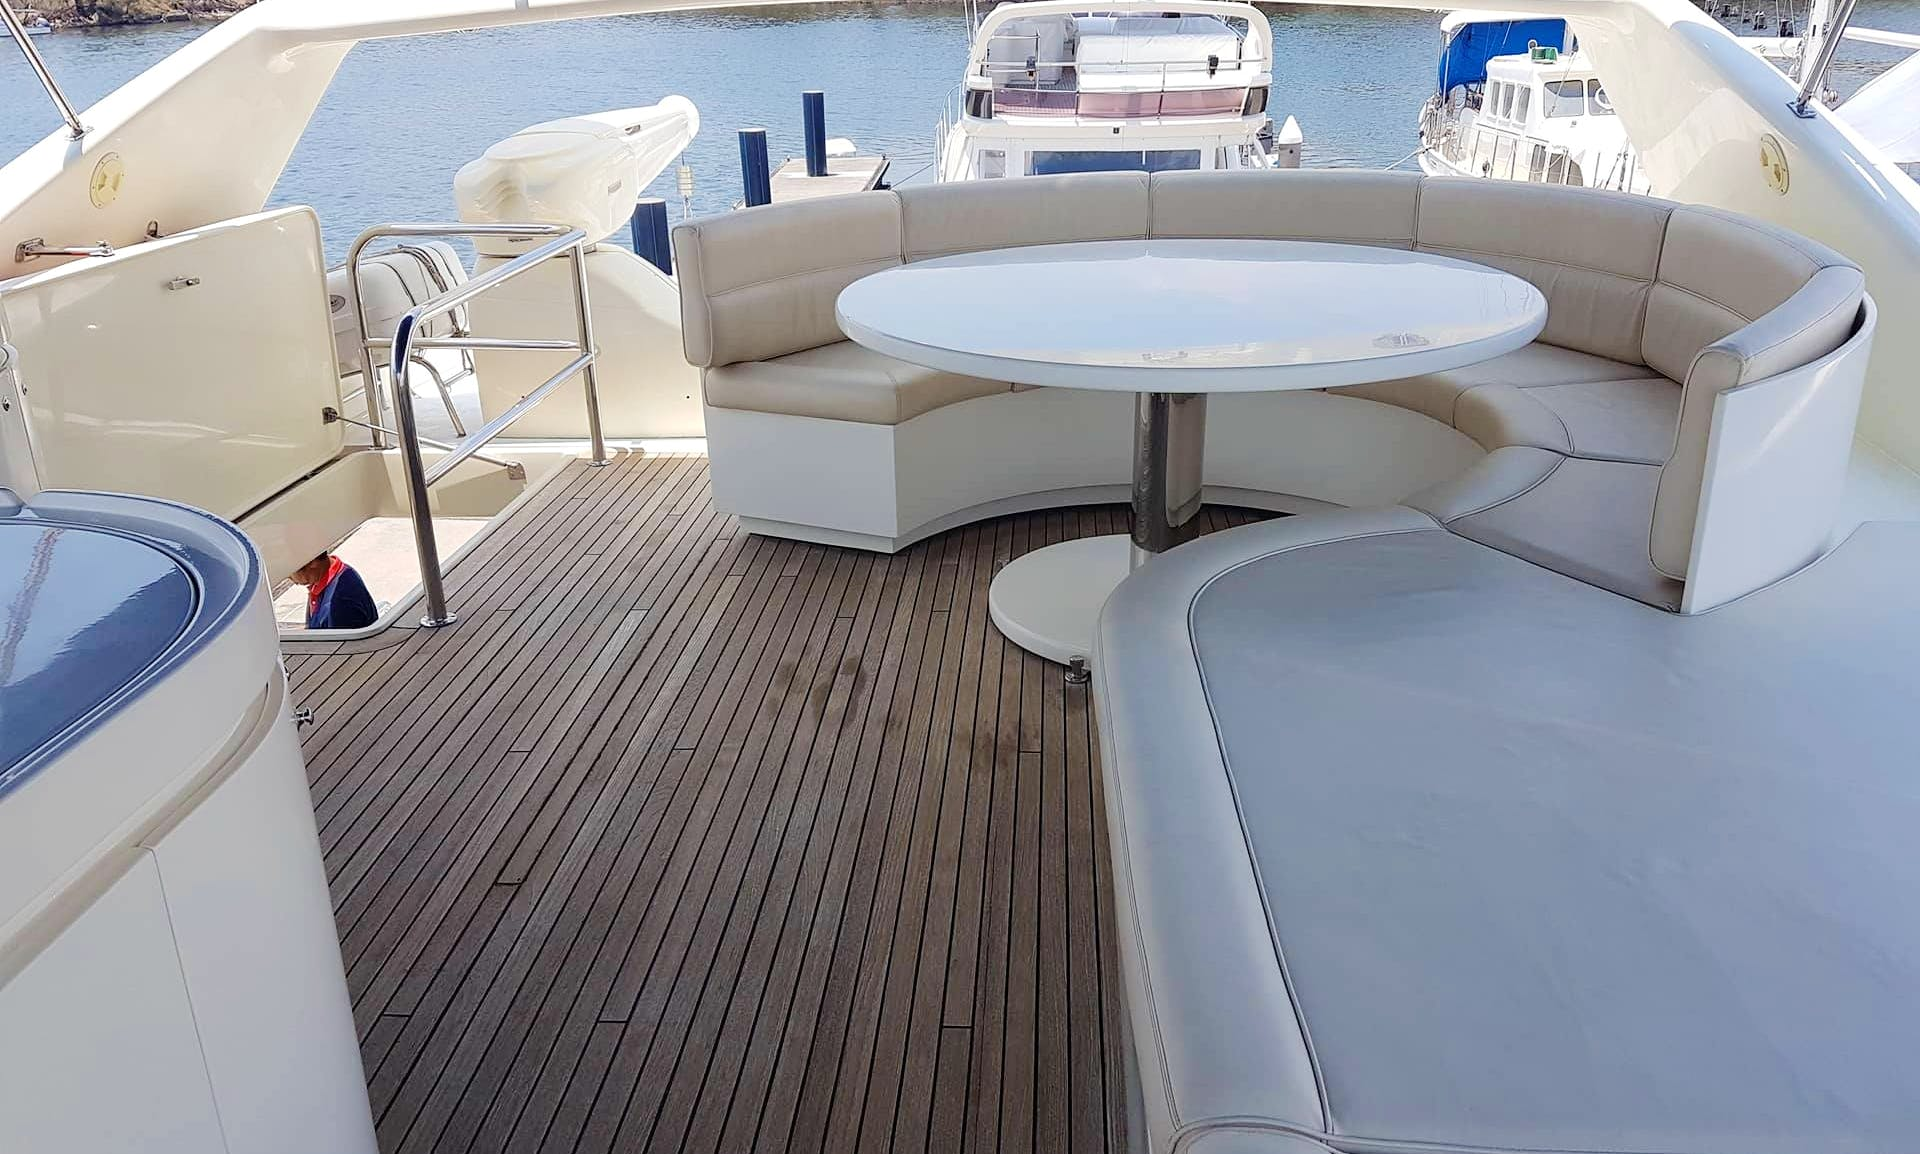 Motor Yacht rental in Subic Bay, Philippines for up to 20 guests at $470 an hour